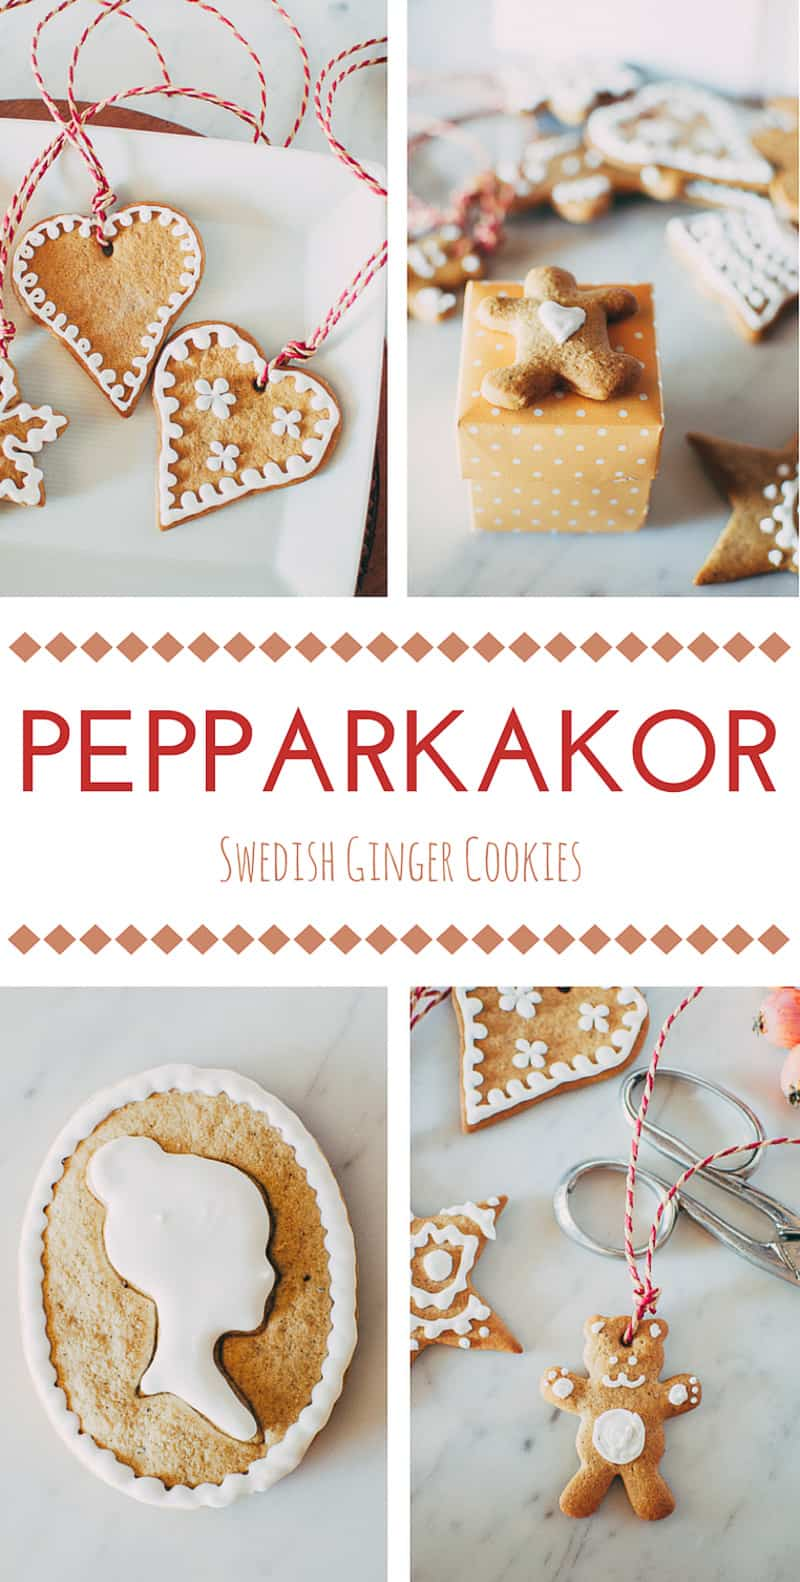 Swedish Ginger Cookies (Pepparkakor)